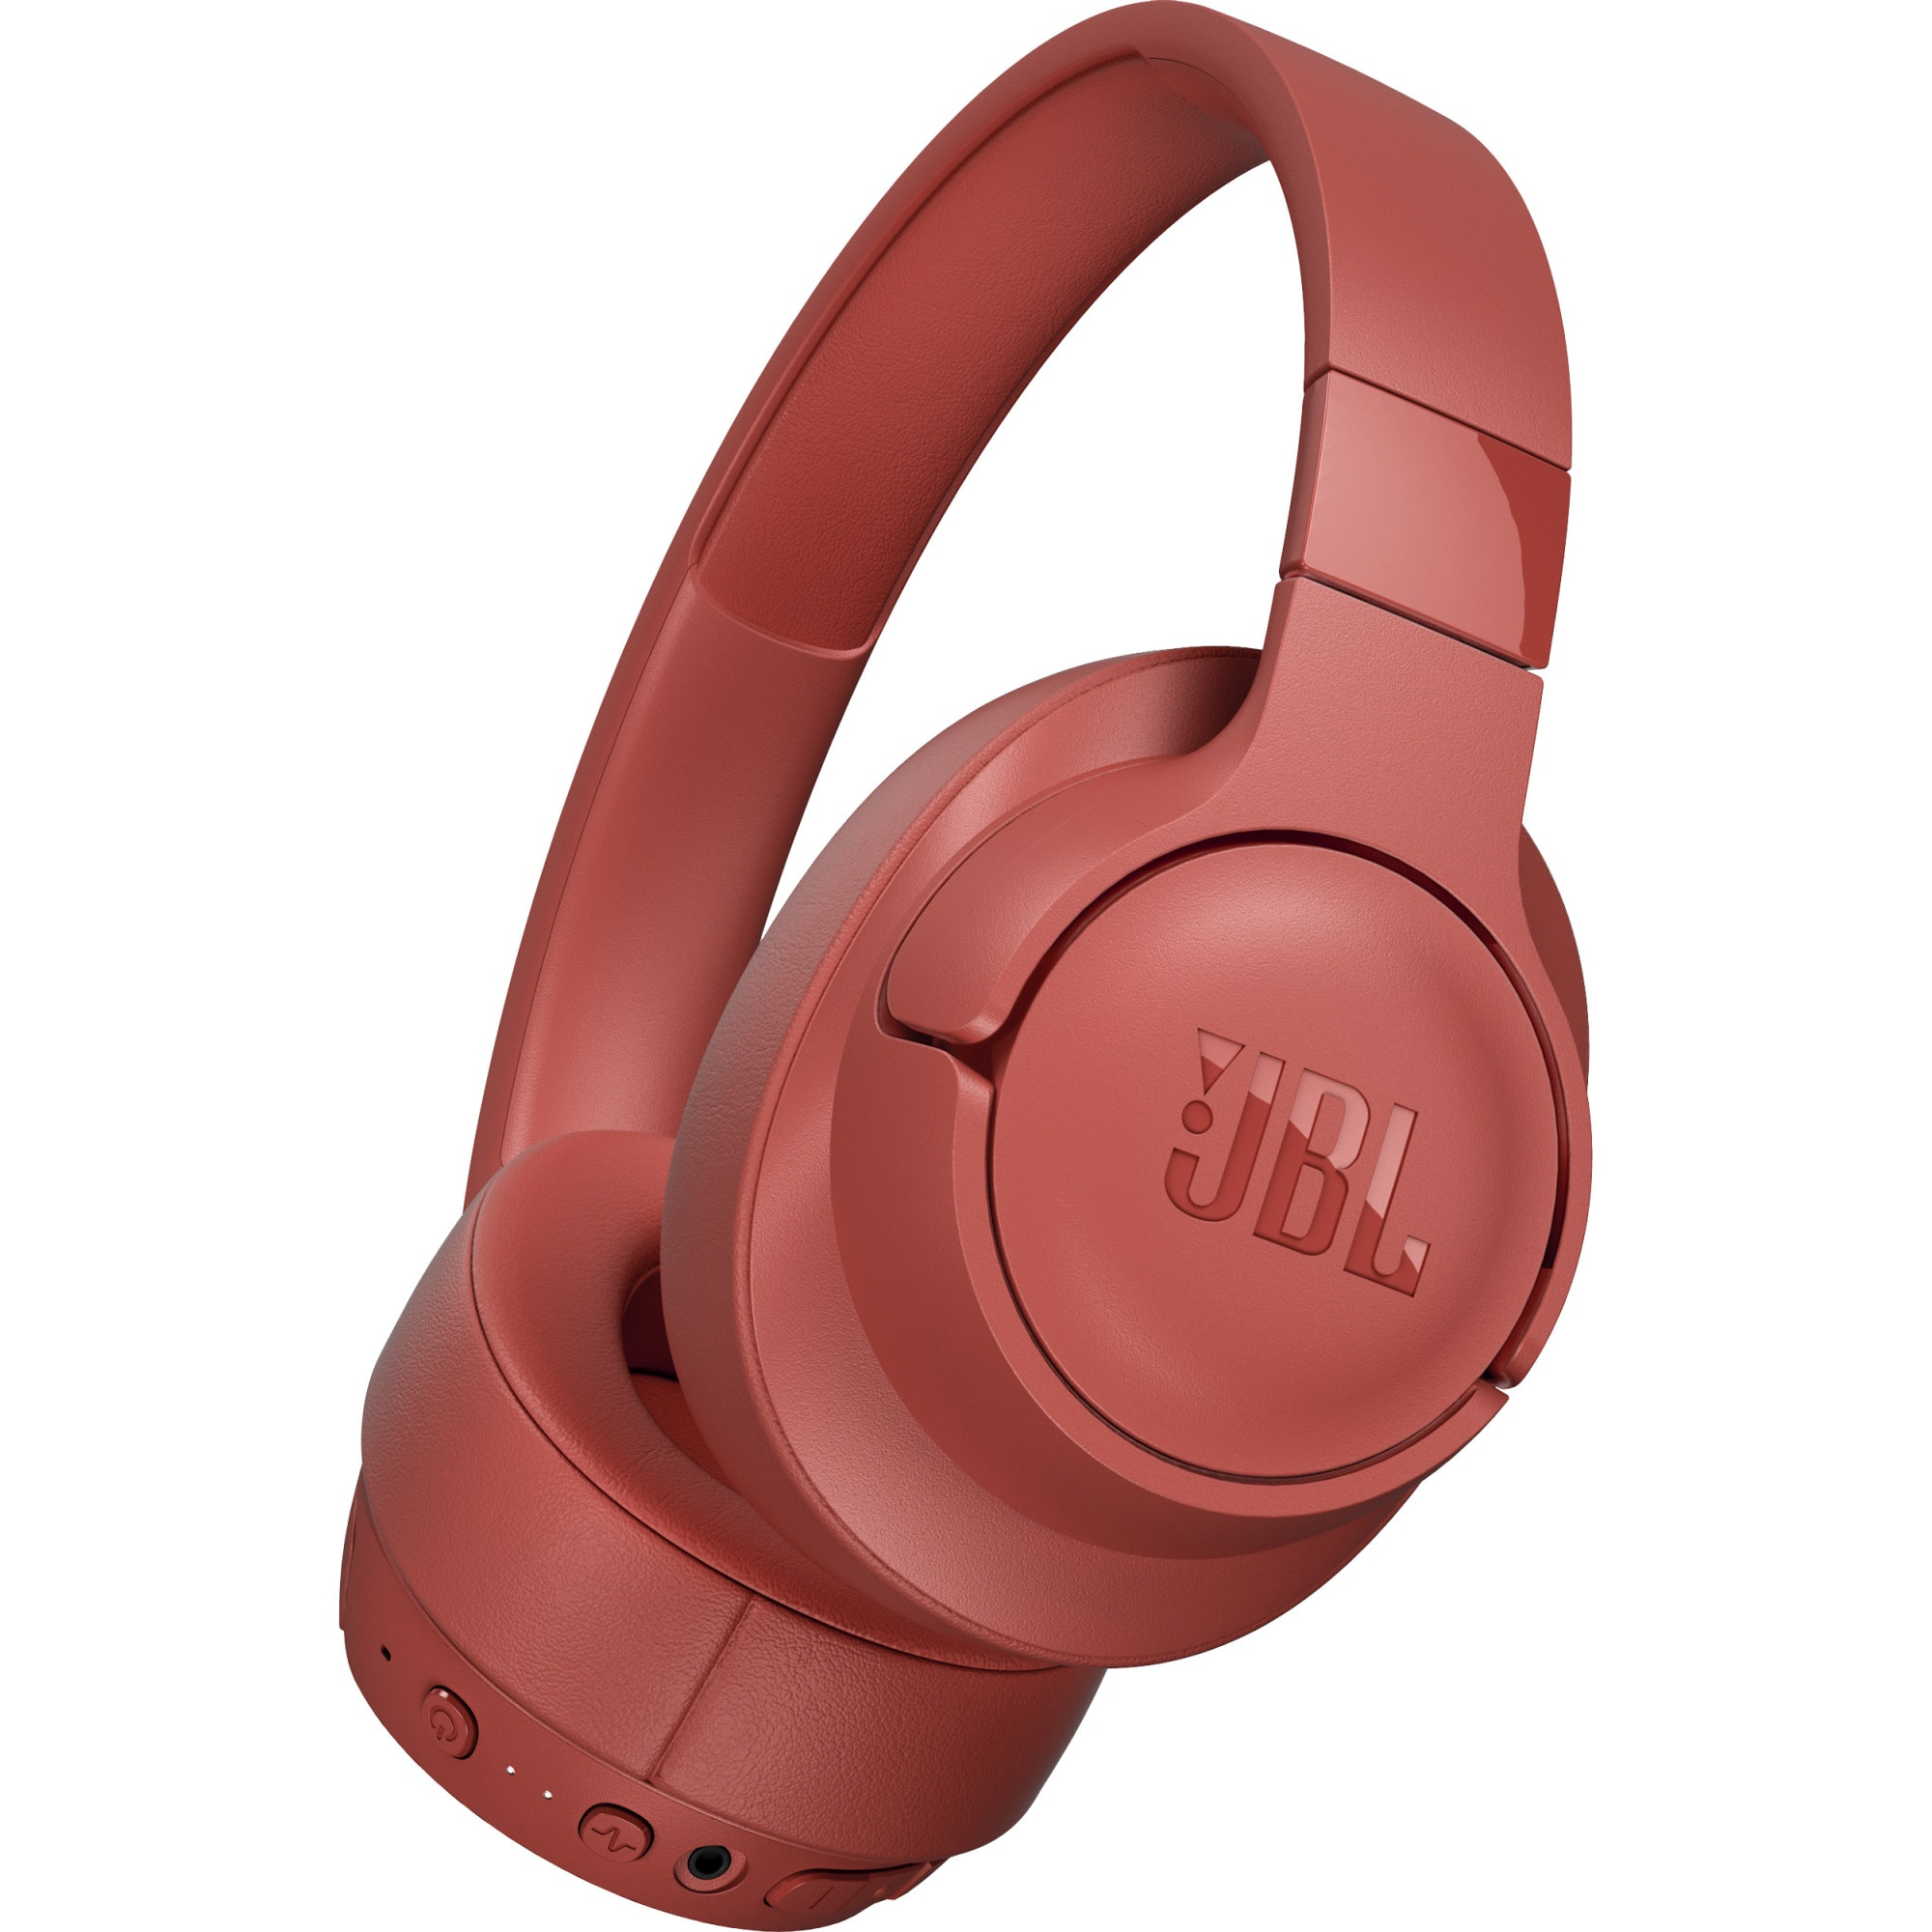 Fotografie Casti JBL TUNE 750, Active Noise Cancelling, Pure Bass, Hands-Free & Voice Control, Multi-Point Connection, Bluetooth Streaming, 15H Playback, Rosu